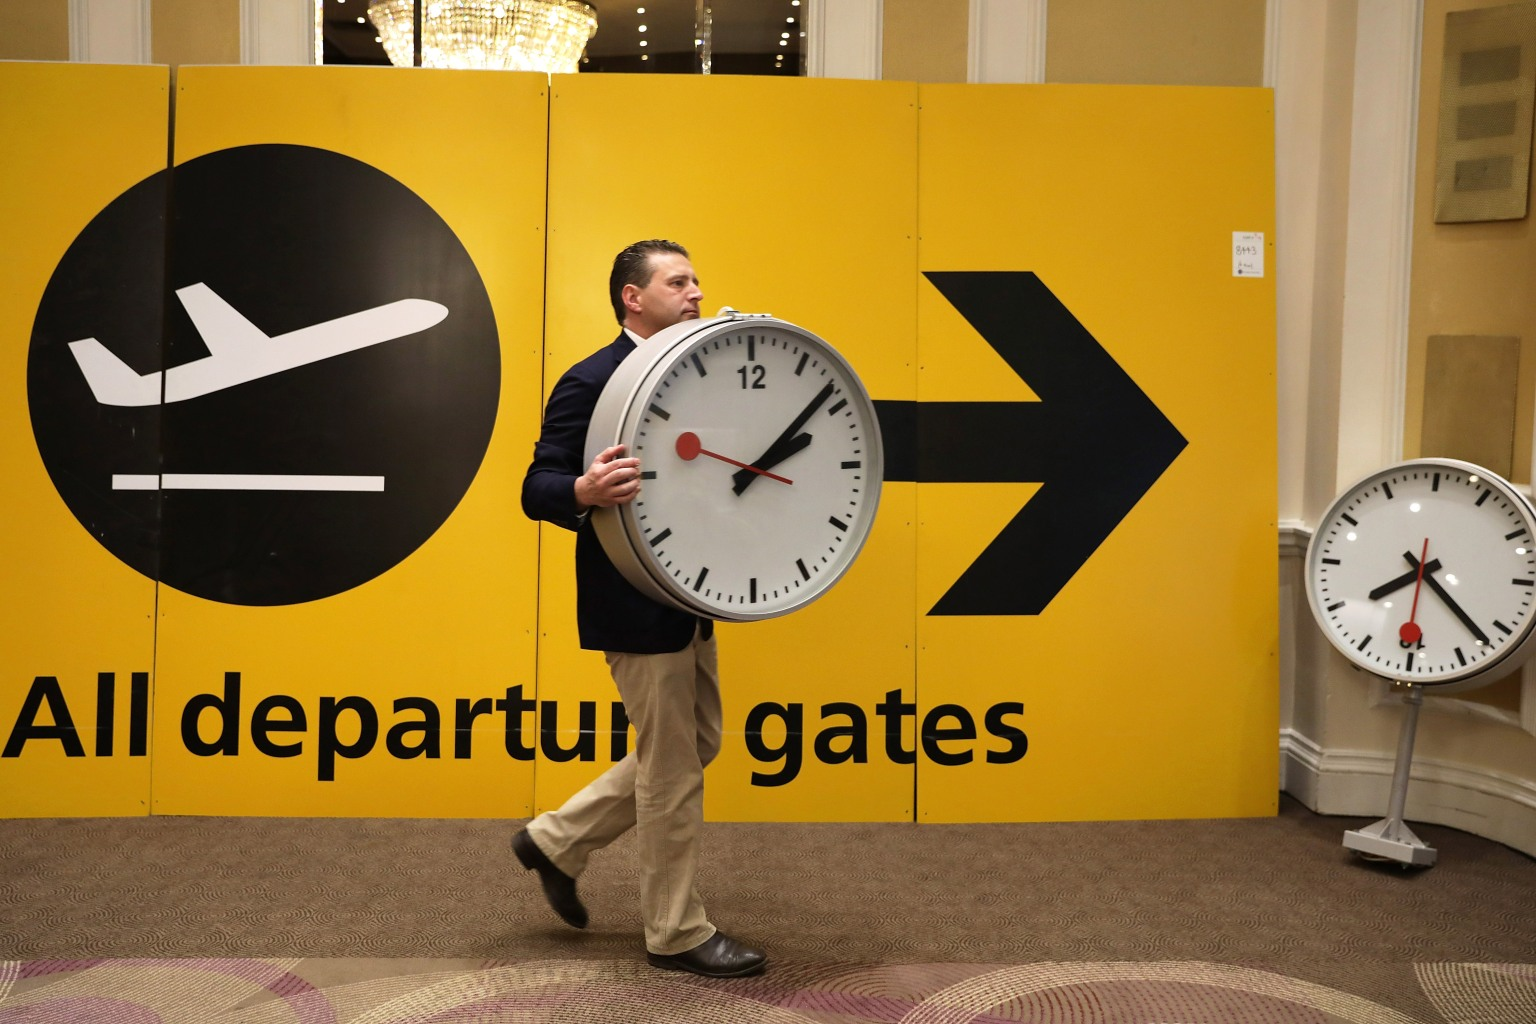 Items are arranged during a preview of an auction at Heathrow Airport on April 20 London. Around 300 lots of memorabilia including clocks, signs, seats, desks, artwork and baggage carousels from Heathrow's Terminal 1, which closed in 2015, will be up for auction. Dan Kitwood/Getty Images